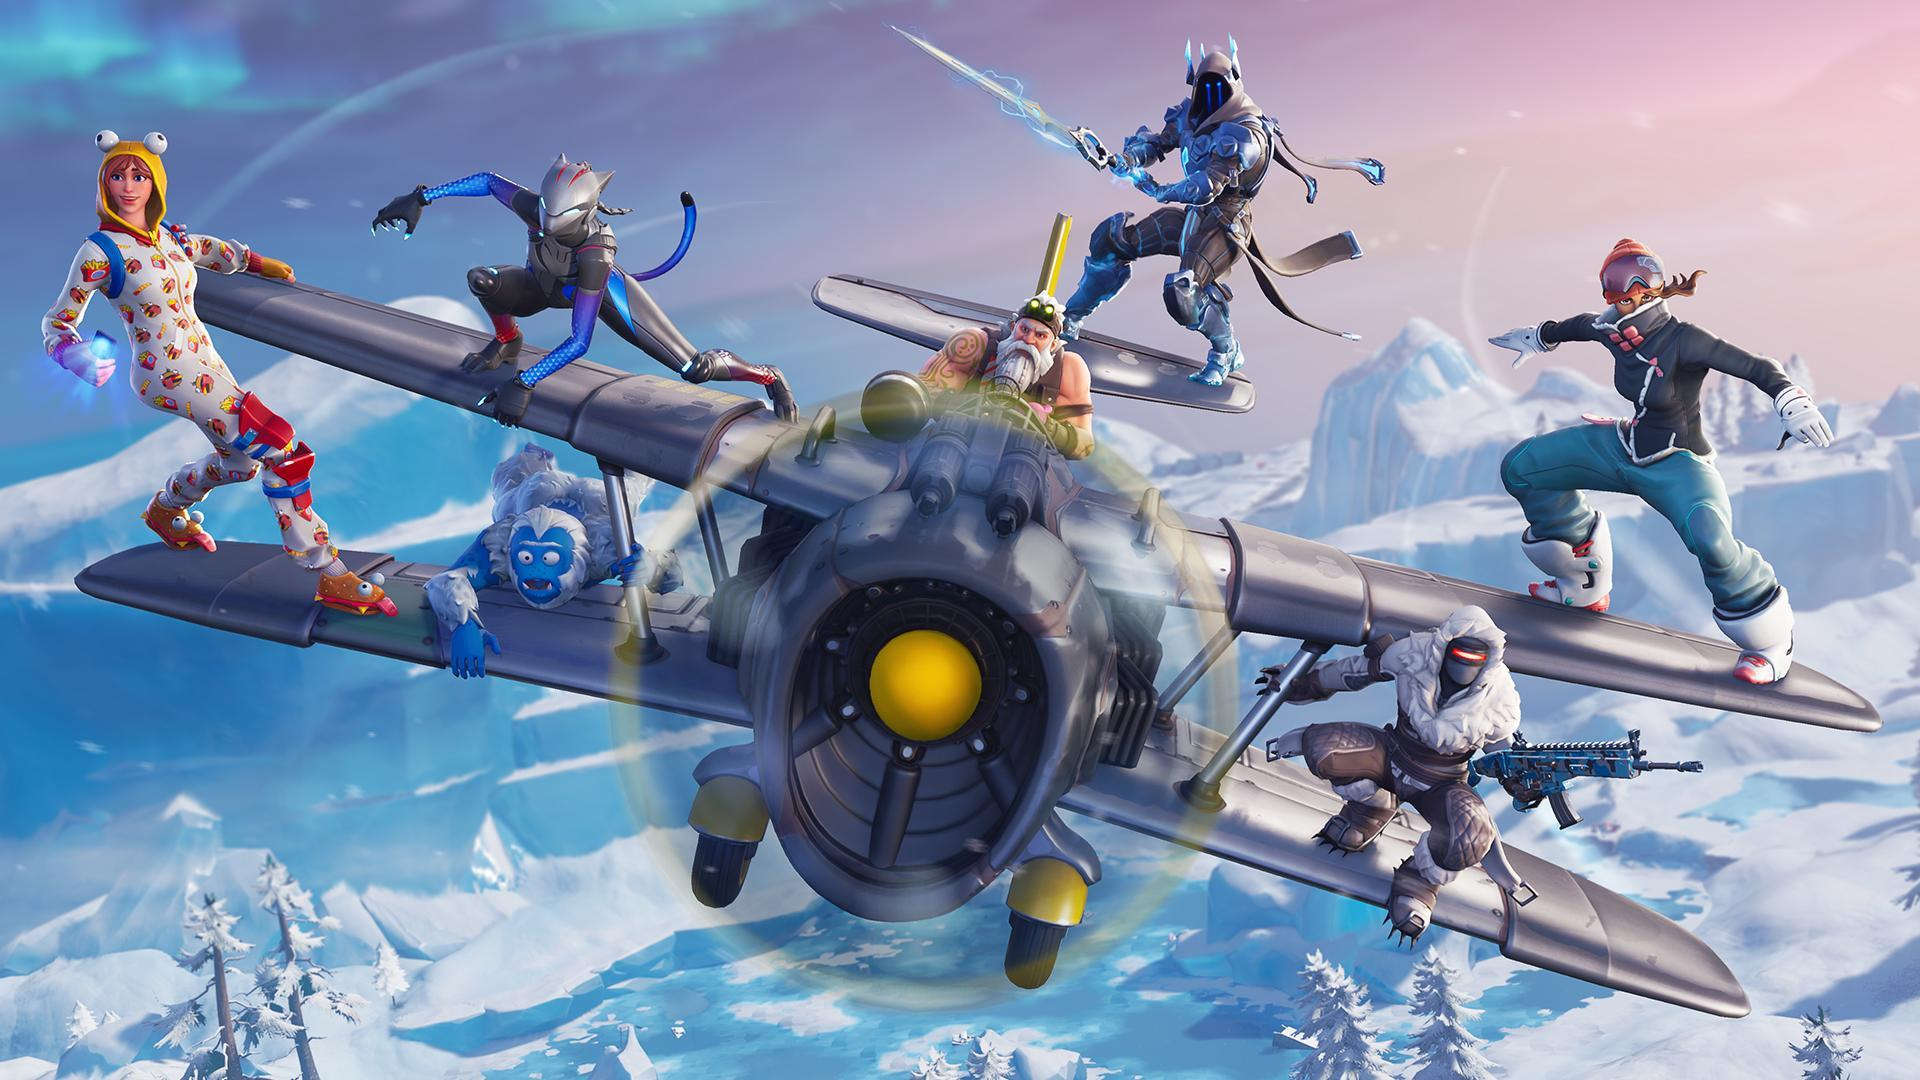 Fortnite Season 7 'Plane Attack' Wallpapers 1920x1080 : FortNiteBR